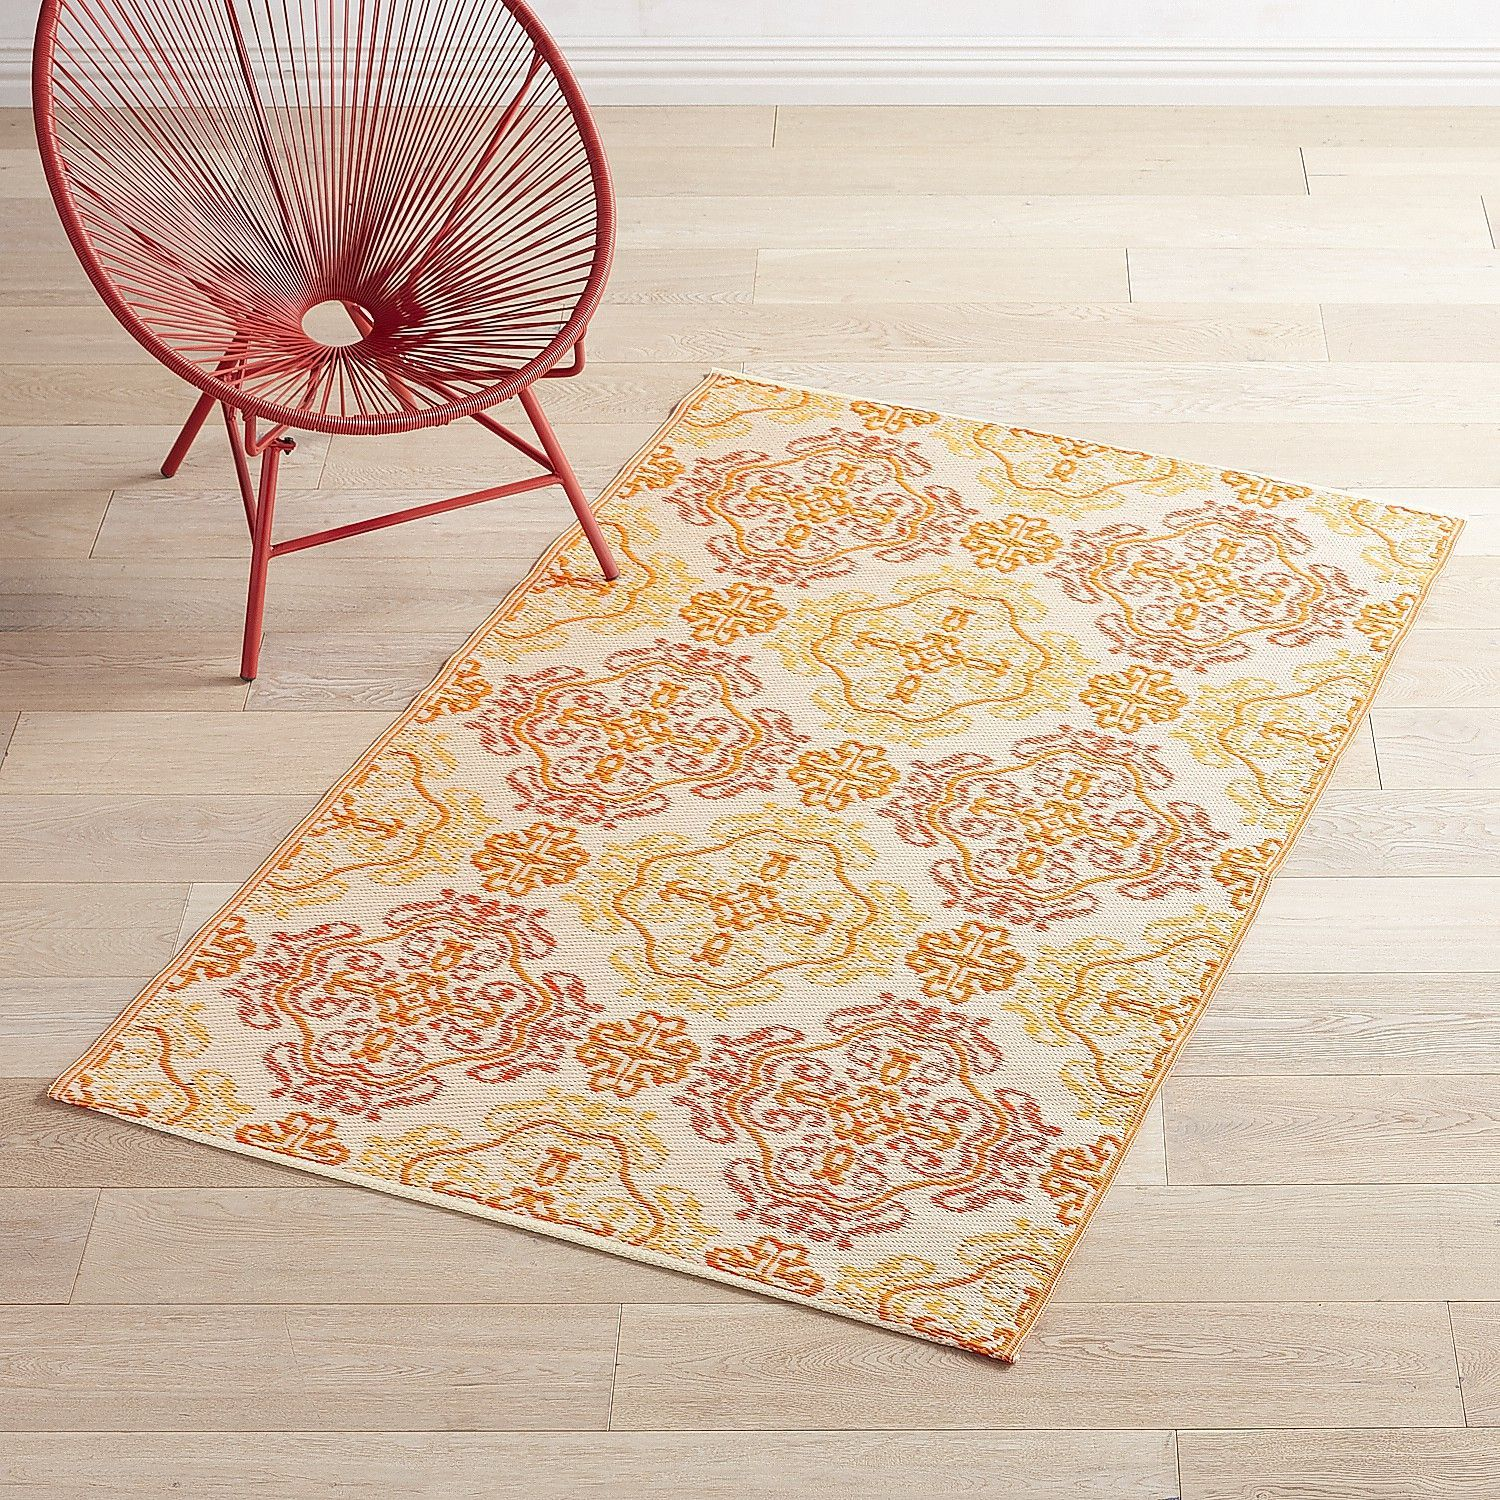 Superb Plastic Orange Tile Medallion 4x6 Rug Design Ideas